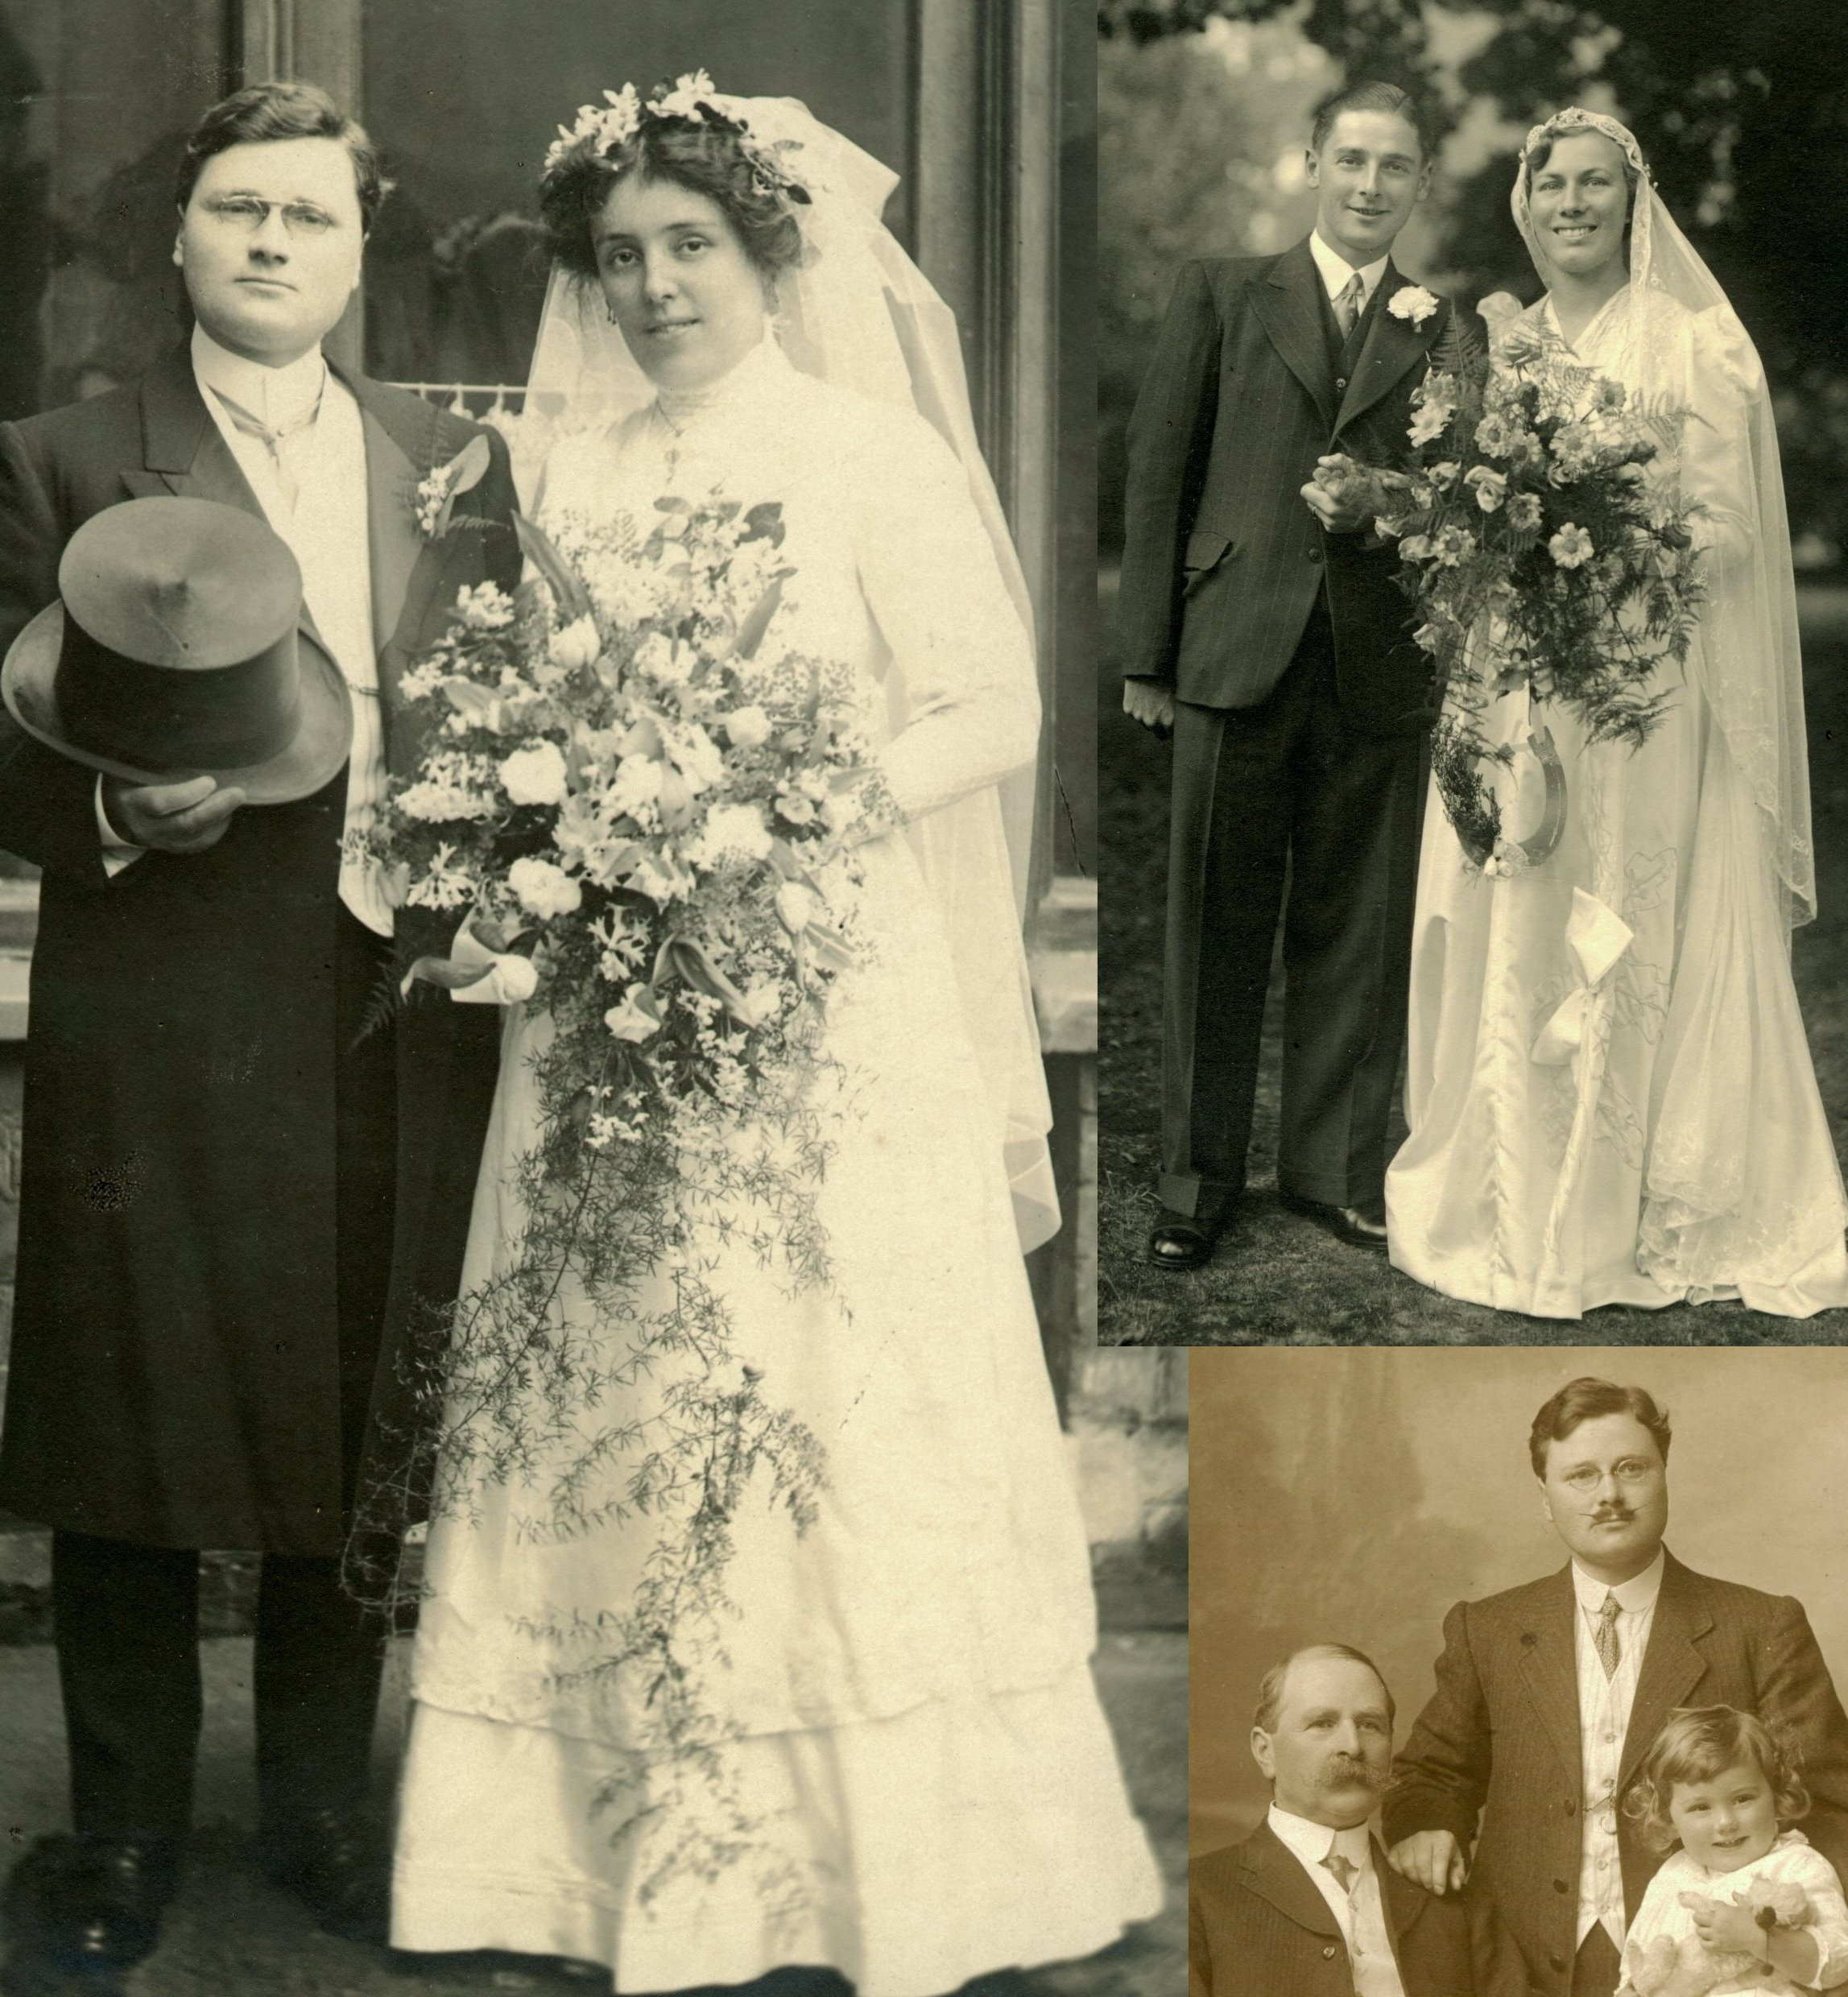 My Grandparents, parents, greatgrandfather, grandfather and father